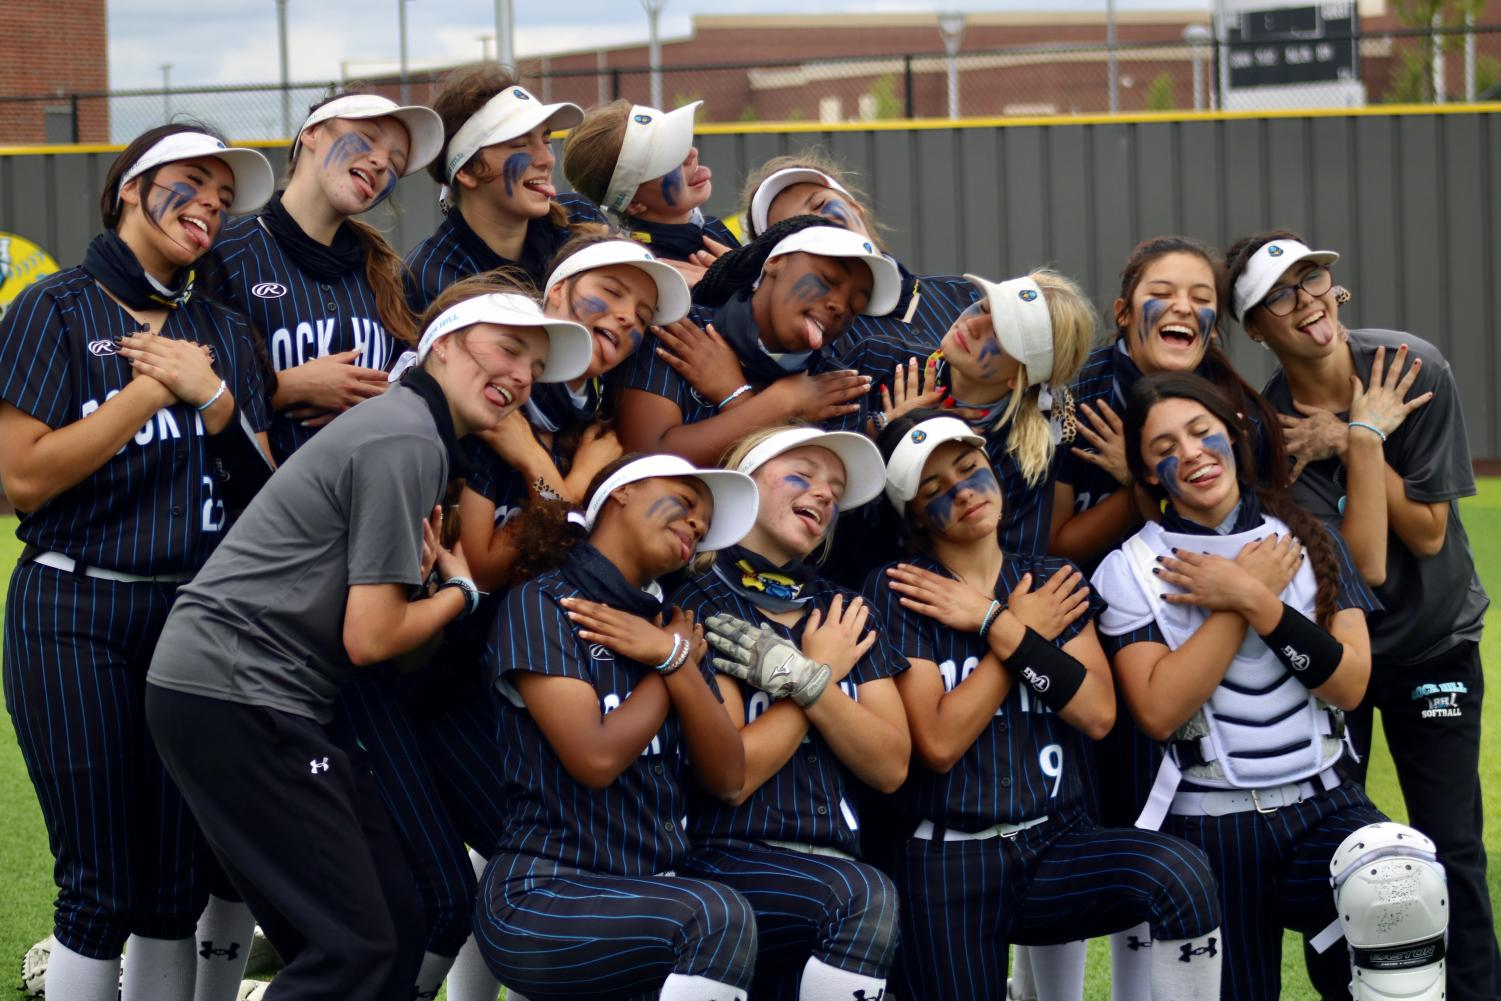 The girls softball team celebrates their district win. In their inaugural year, the girls became 5A district champs.